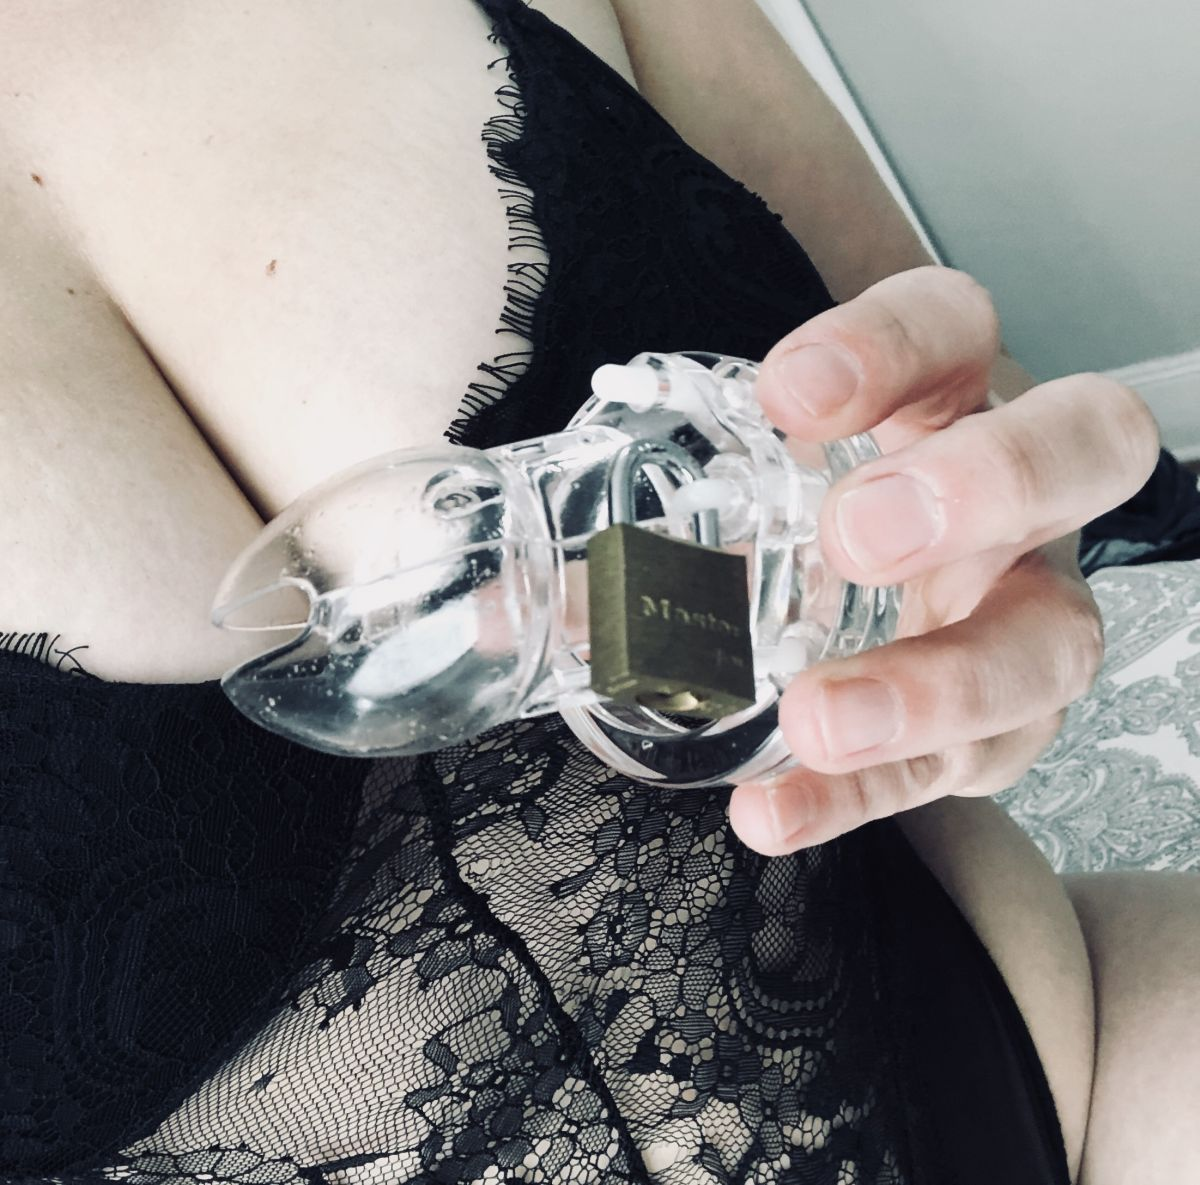 Hacked onlyfans Your Cuckold Girlfriend